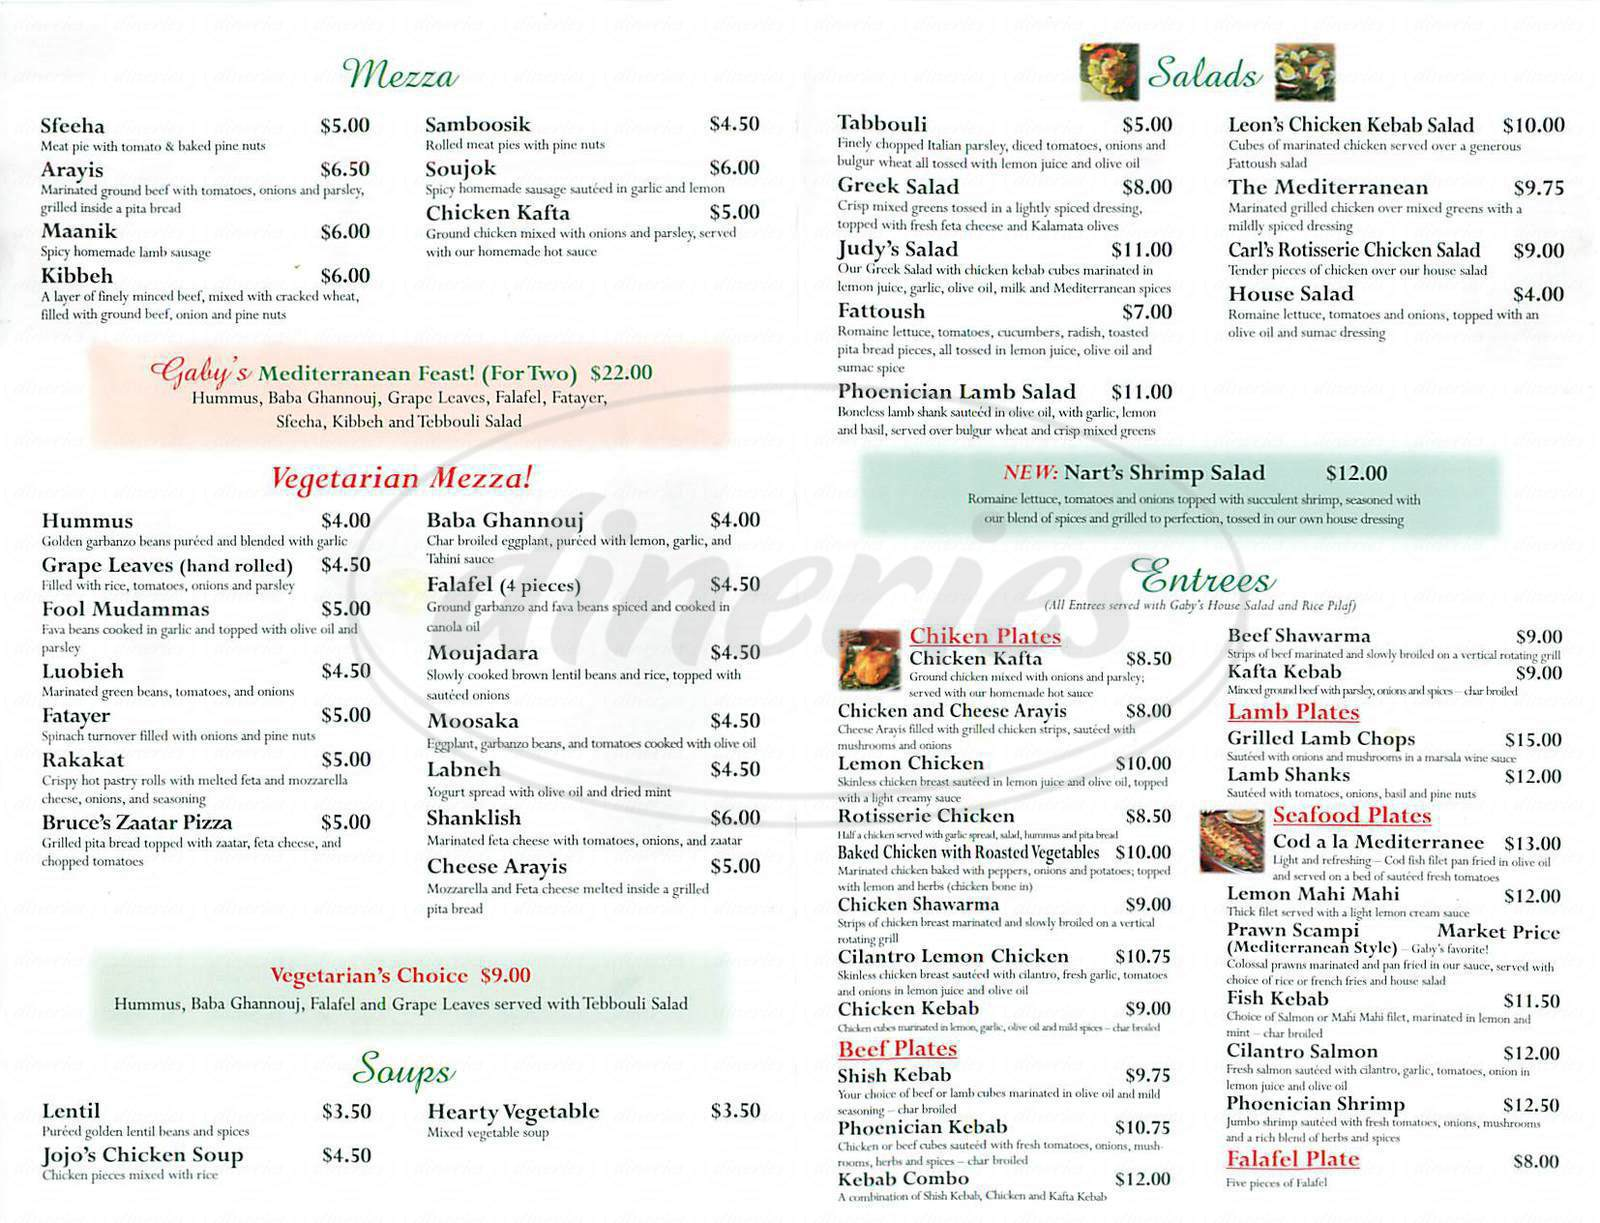 menu for Gaby's Mediterranean